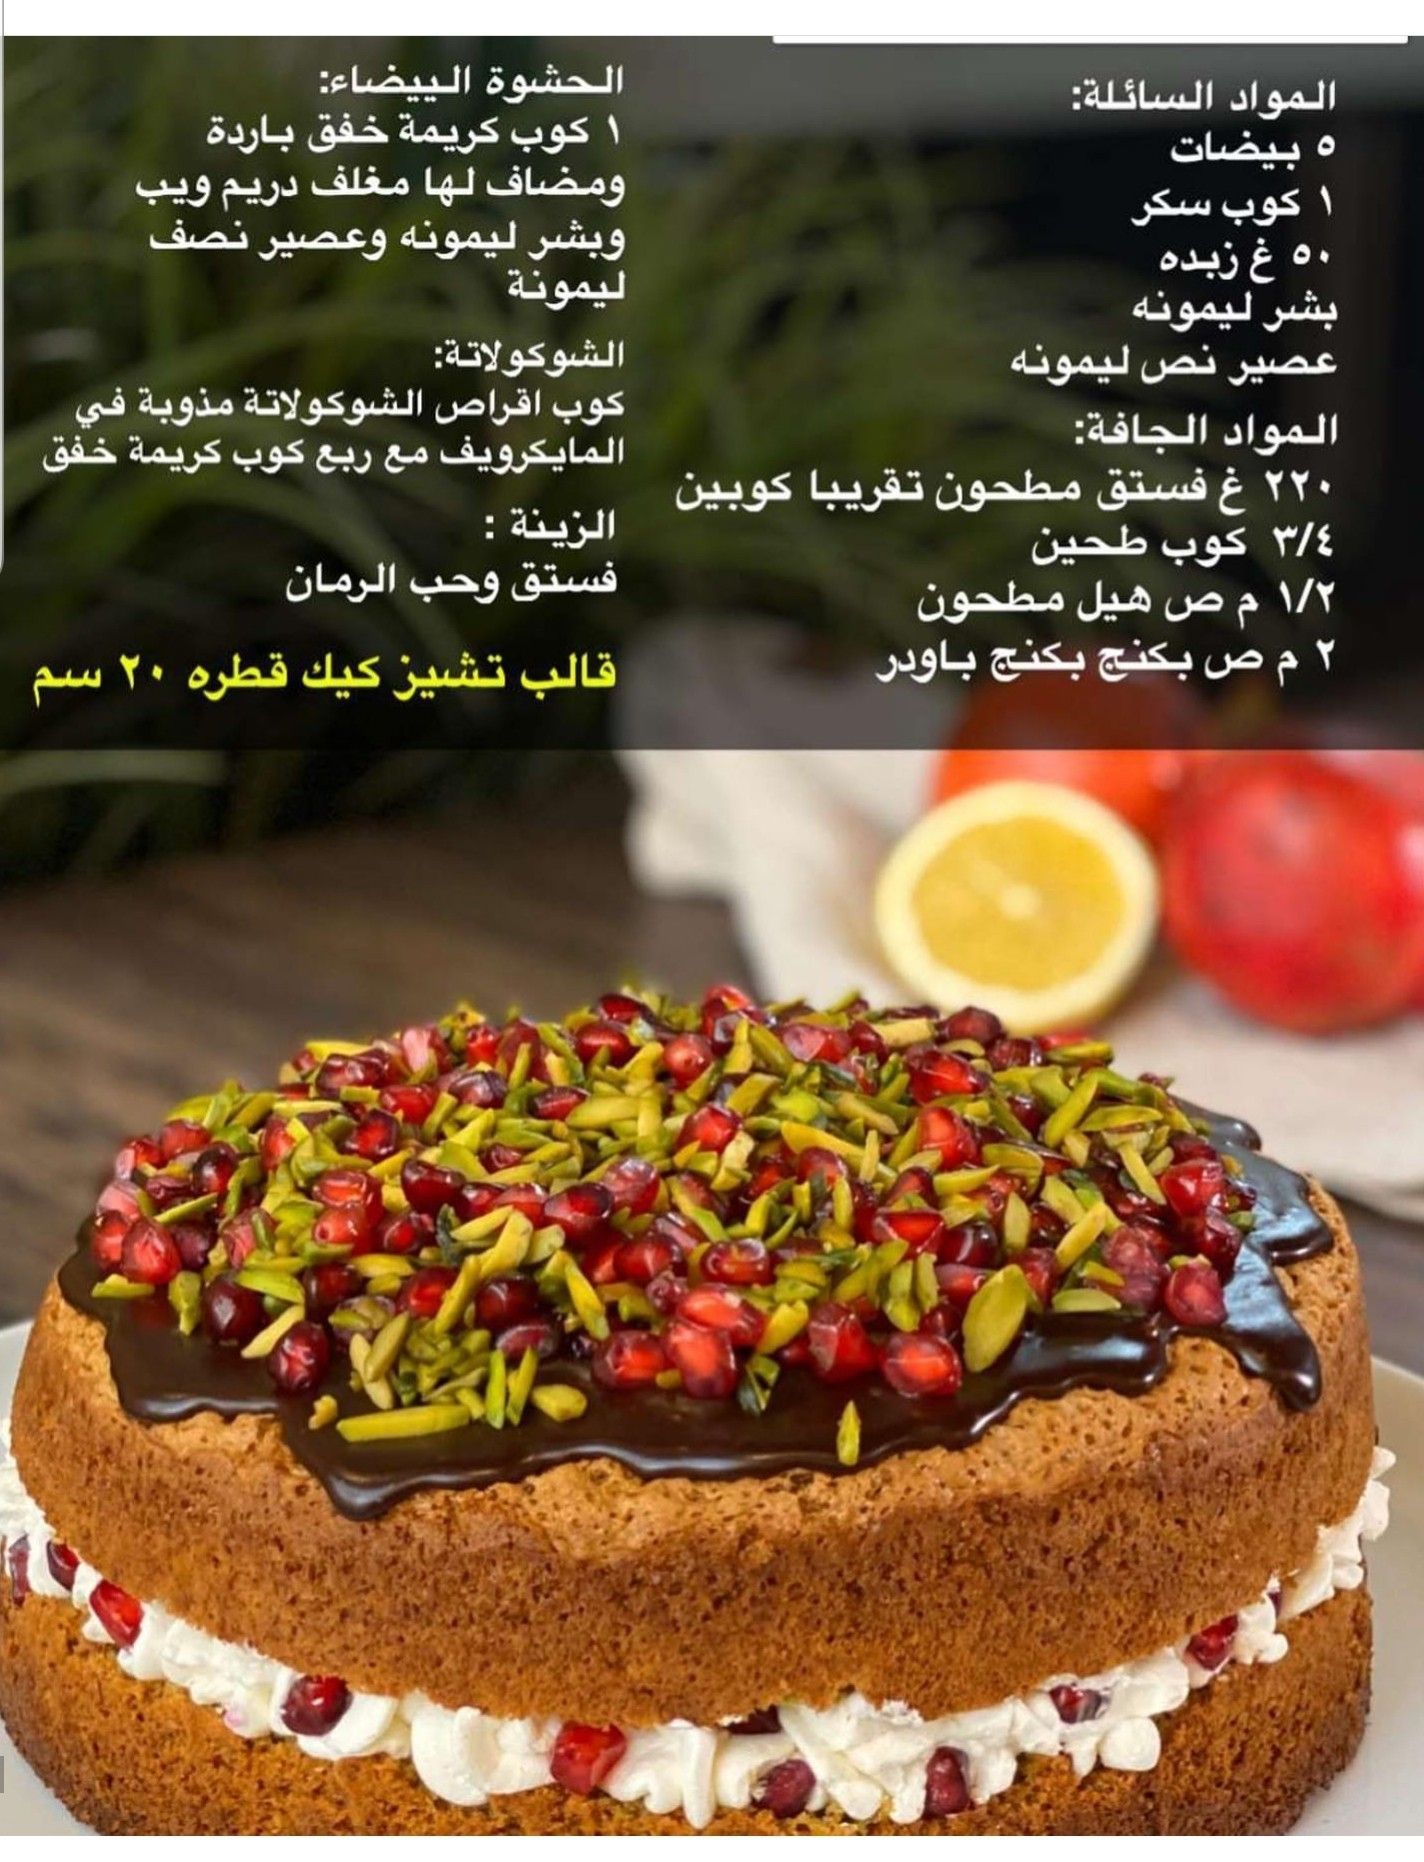 Pin By Nane On Cake In 2021 Food And Drink Yummy Food Recipes